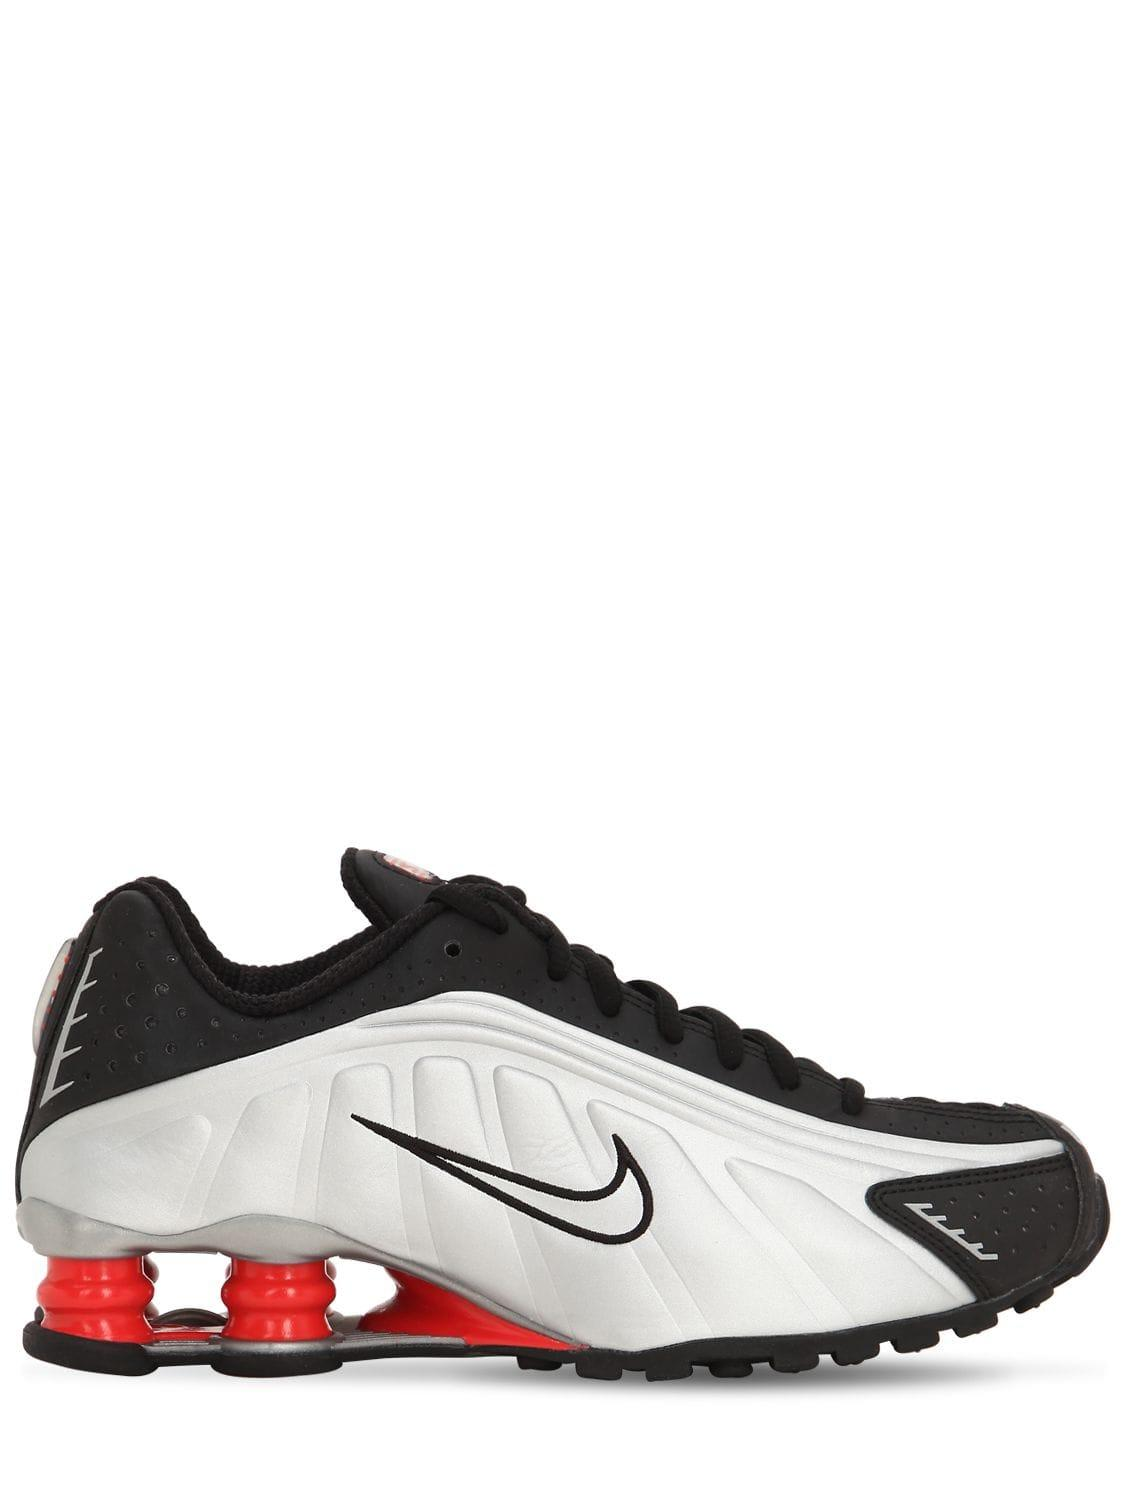 official photos 45dd4 a6f06 Nike. Women s Black Shox R4 Sneakers